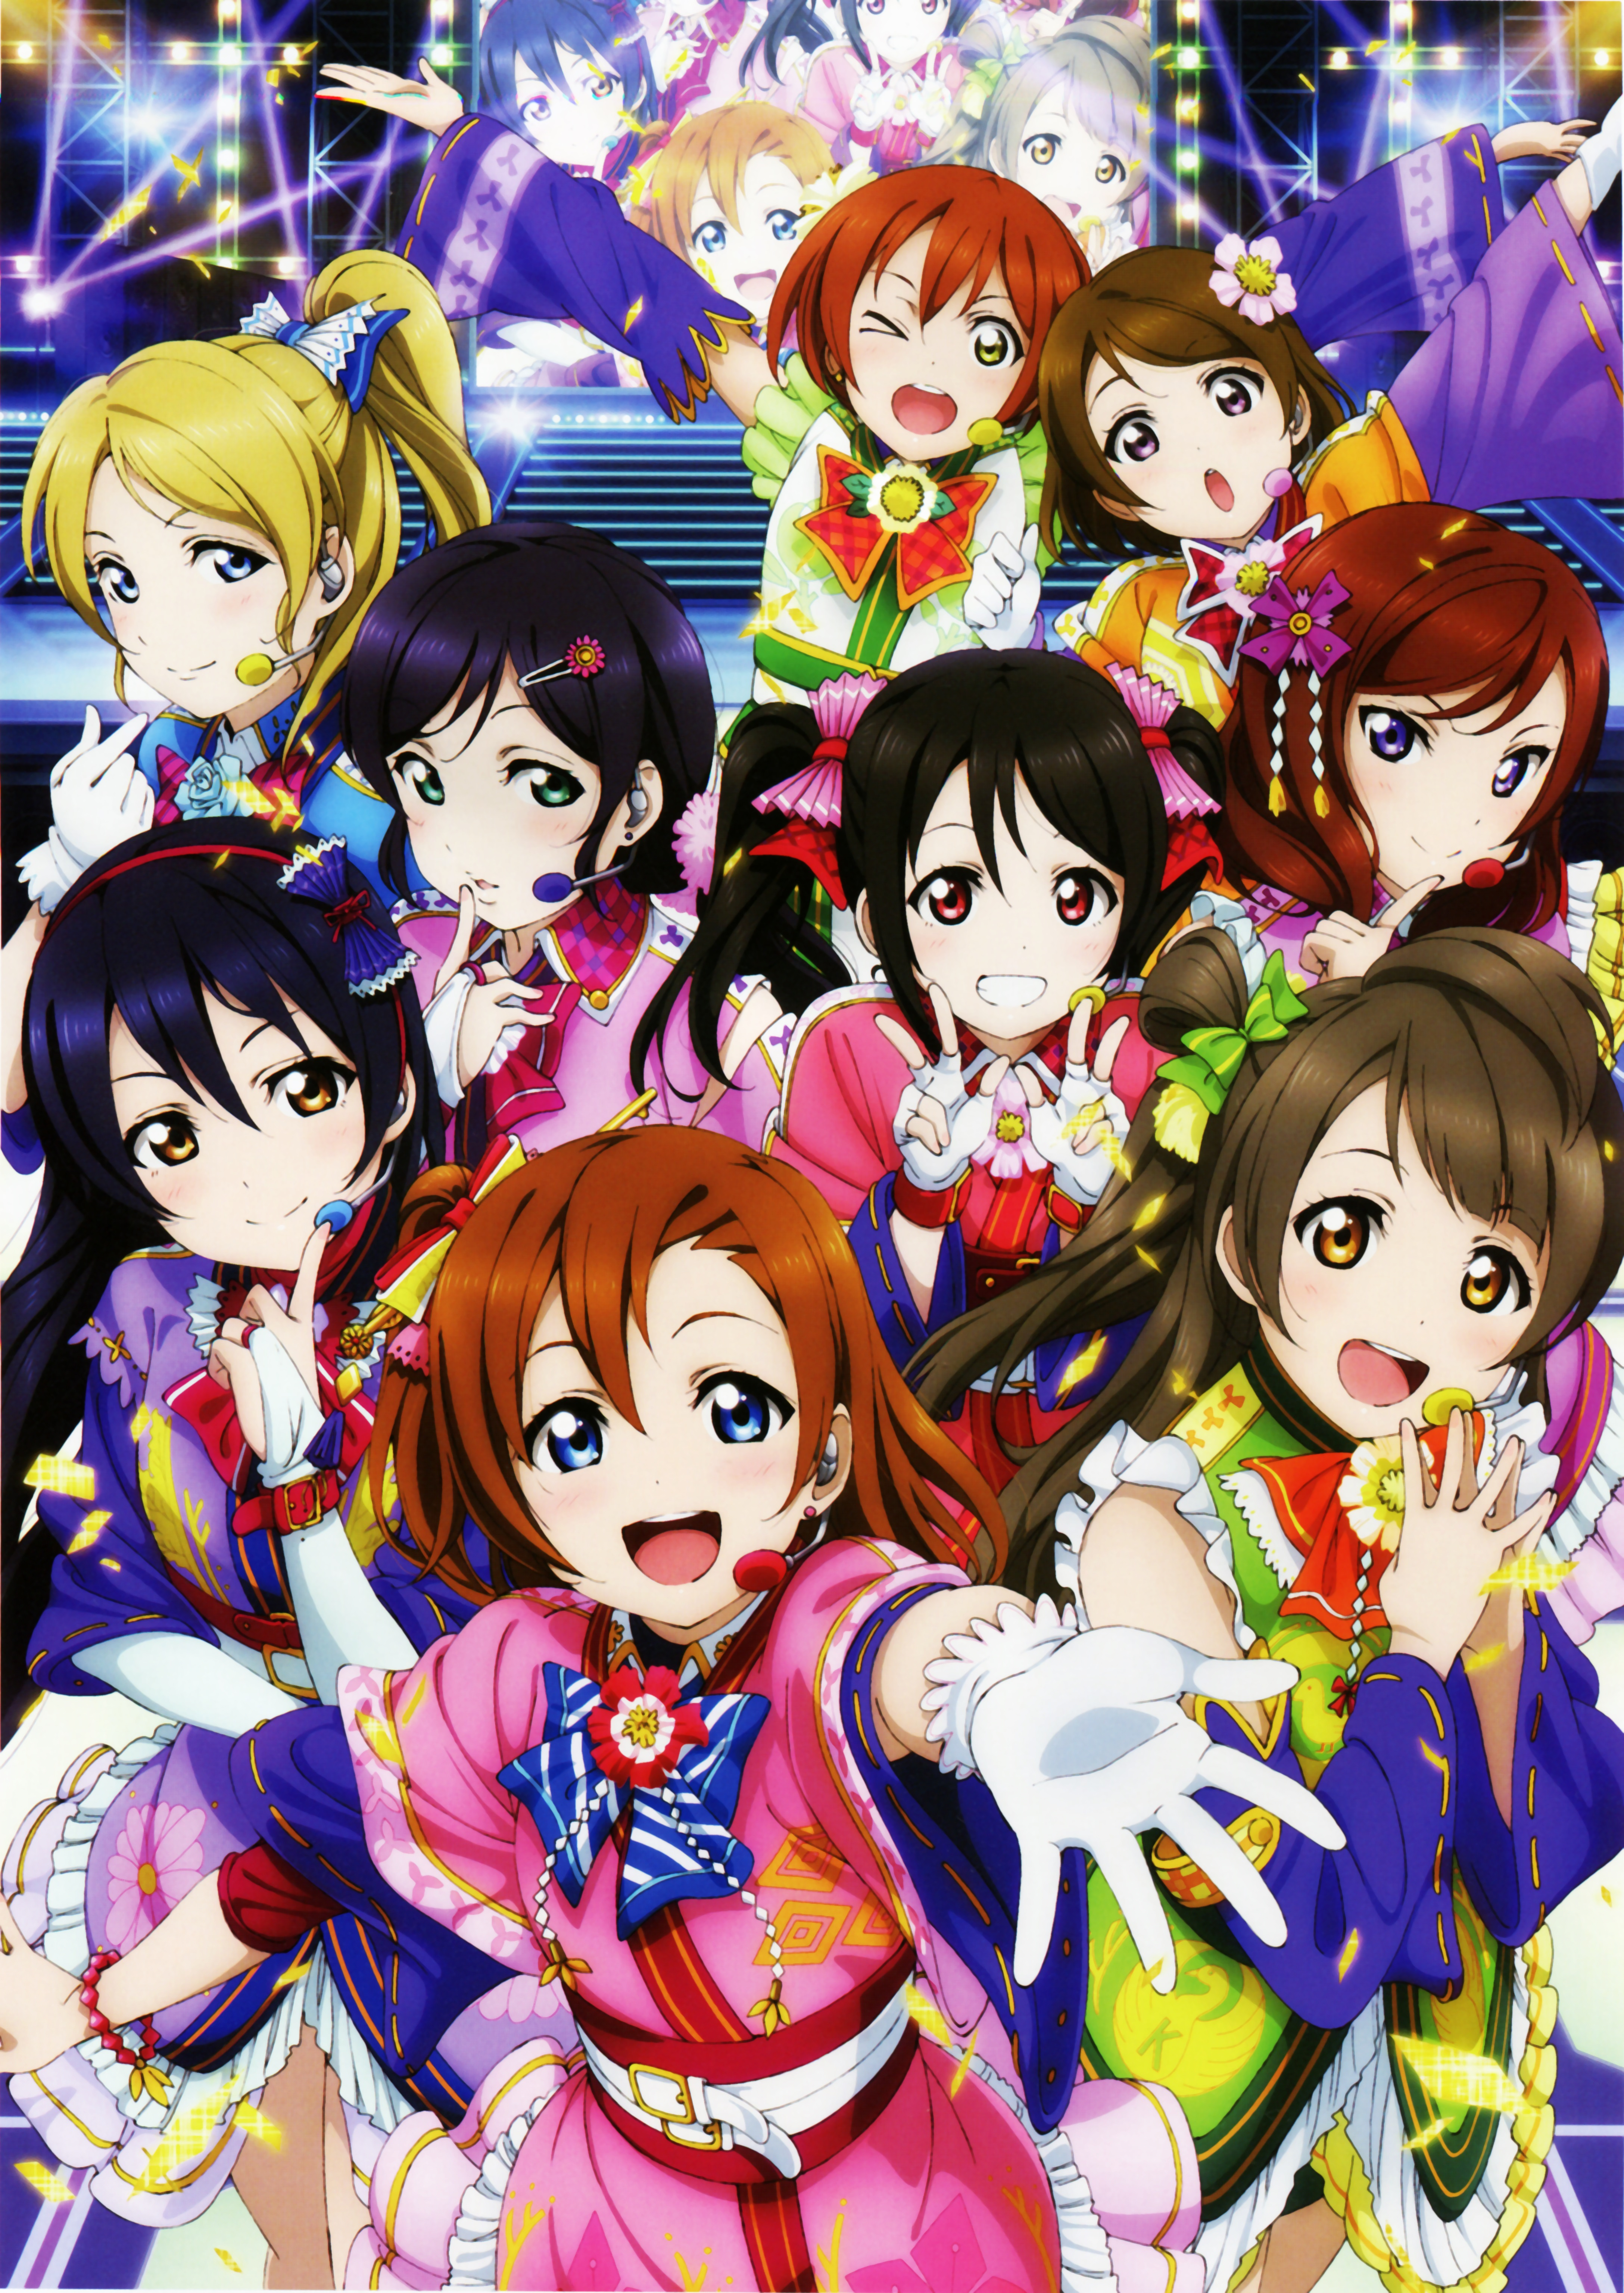 Muse's New Year LoveLive! 2013